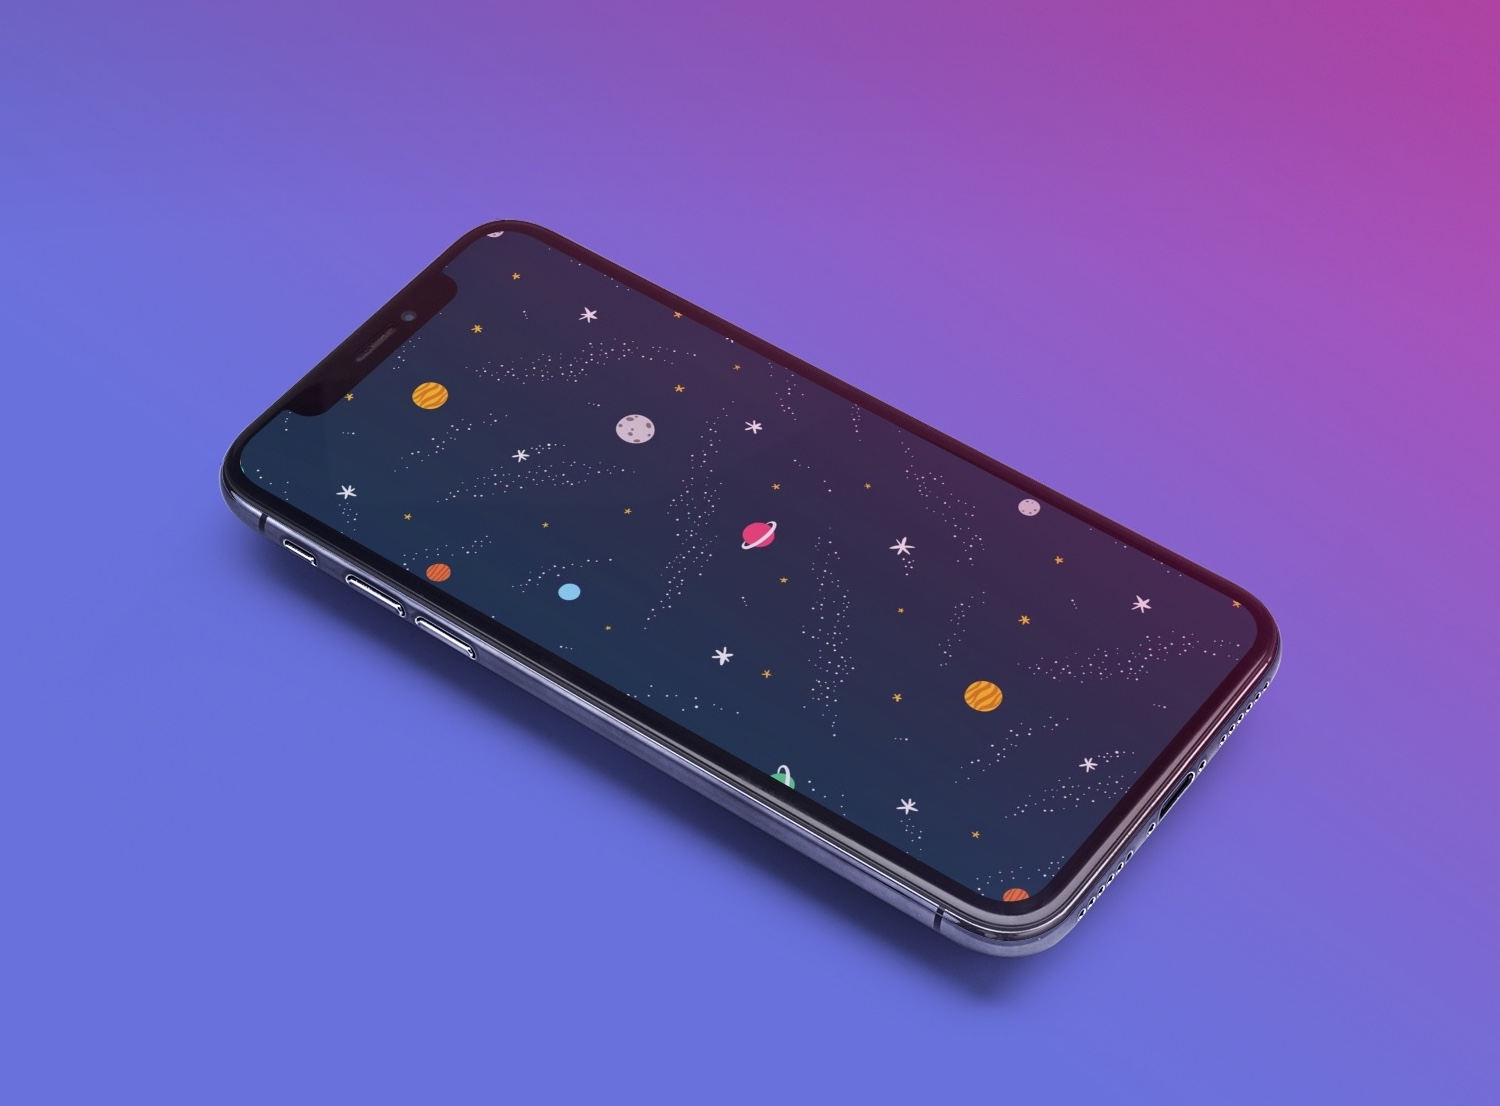 Space wallpaper for iPhone, iPad, and Mac